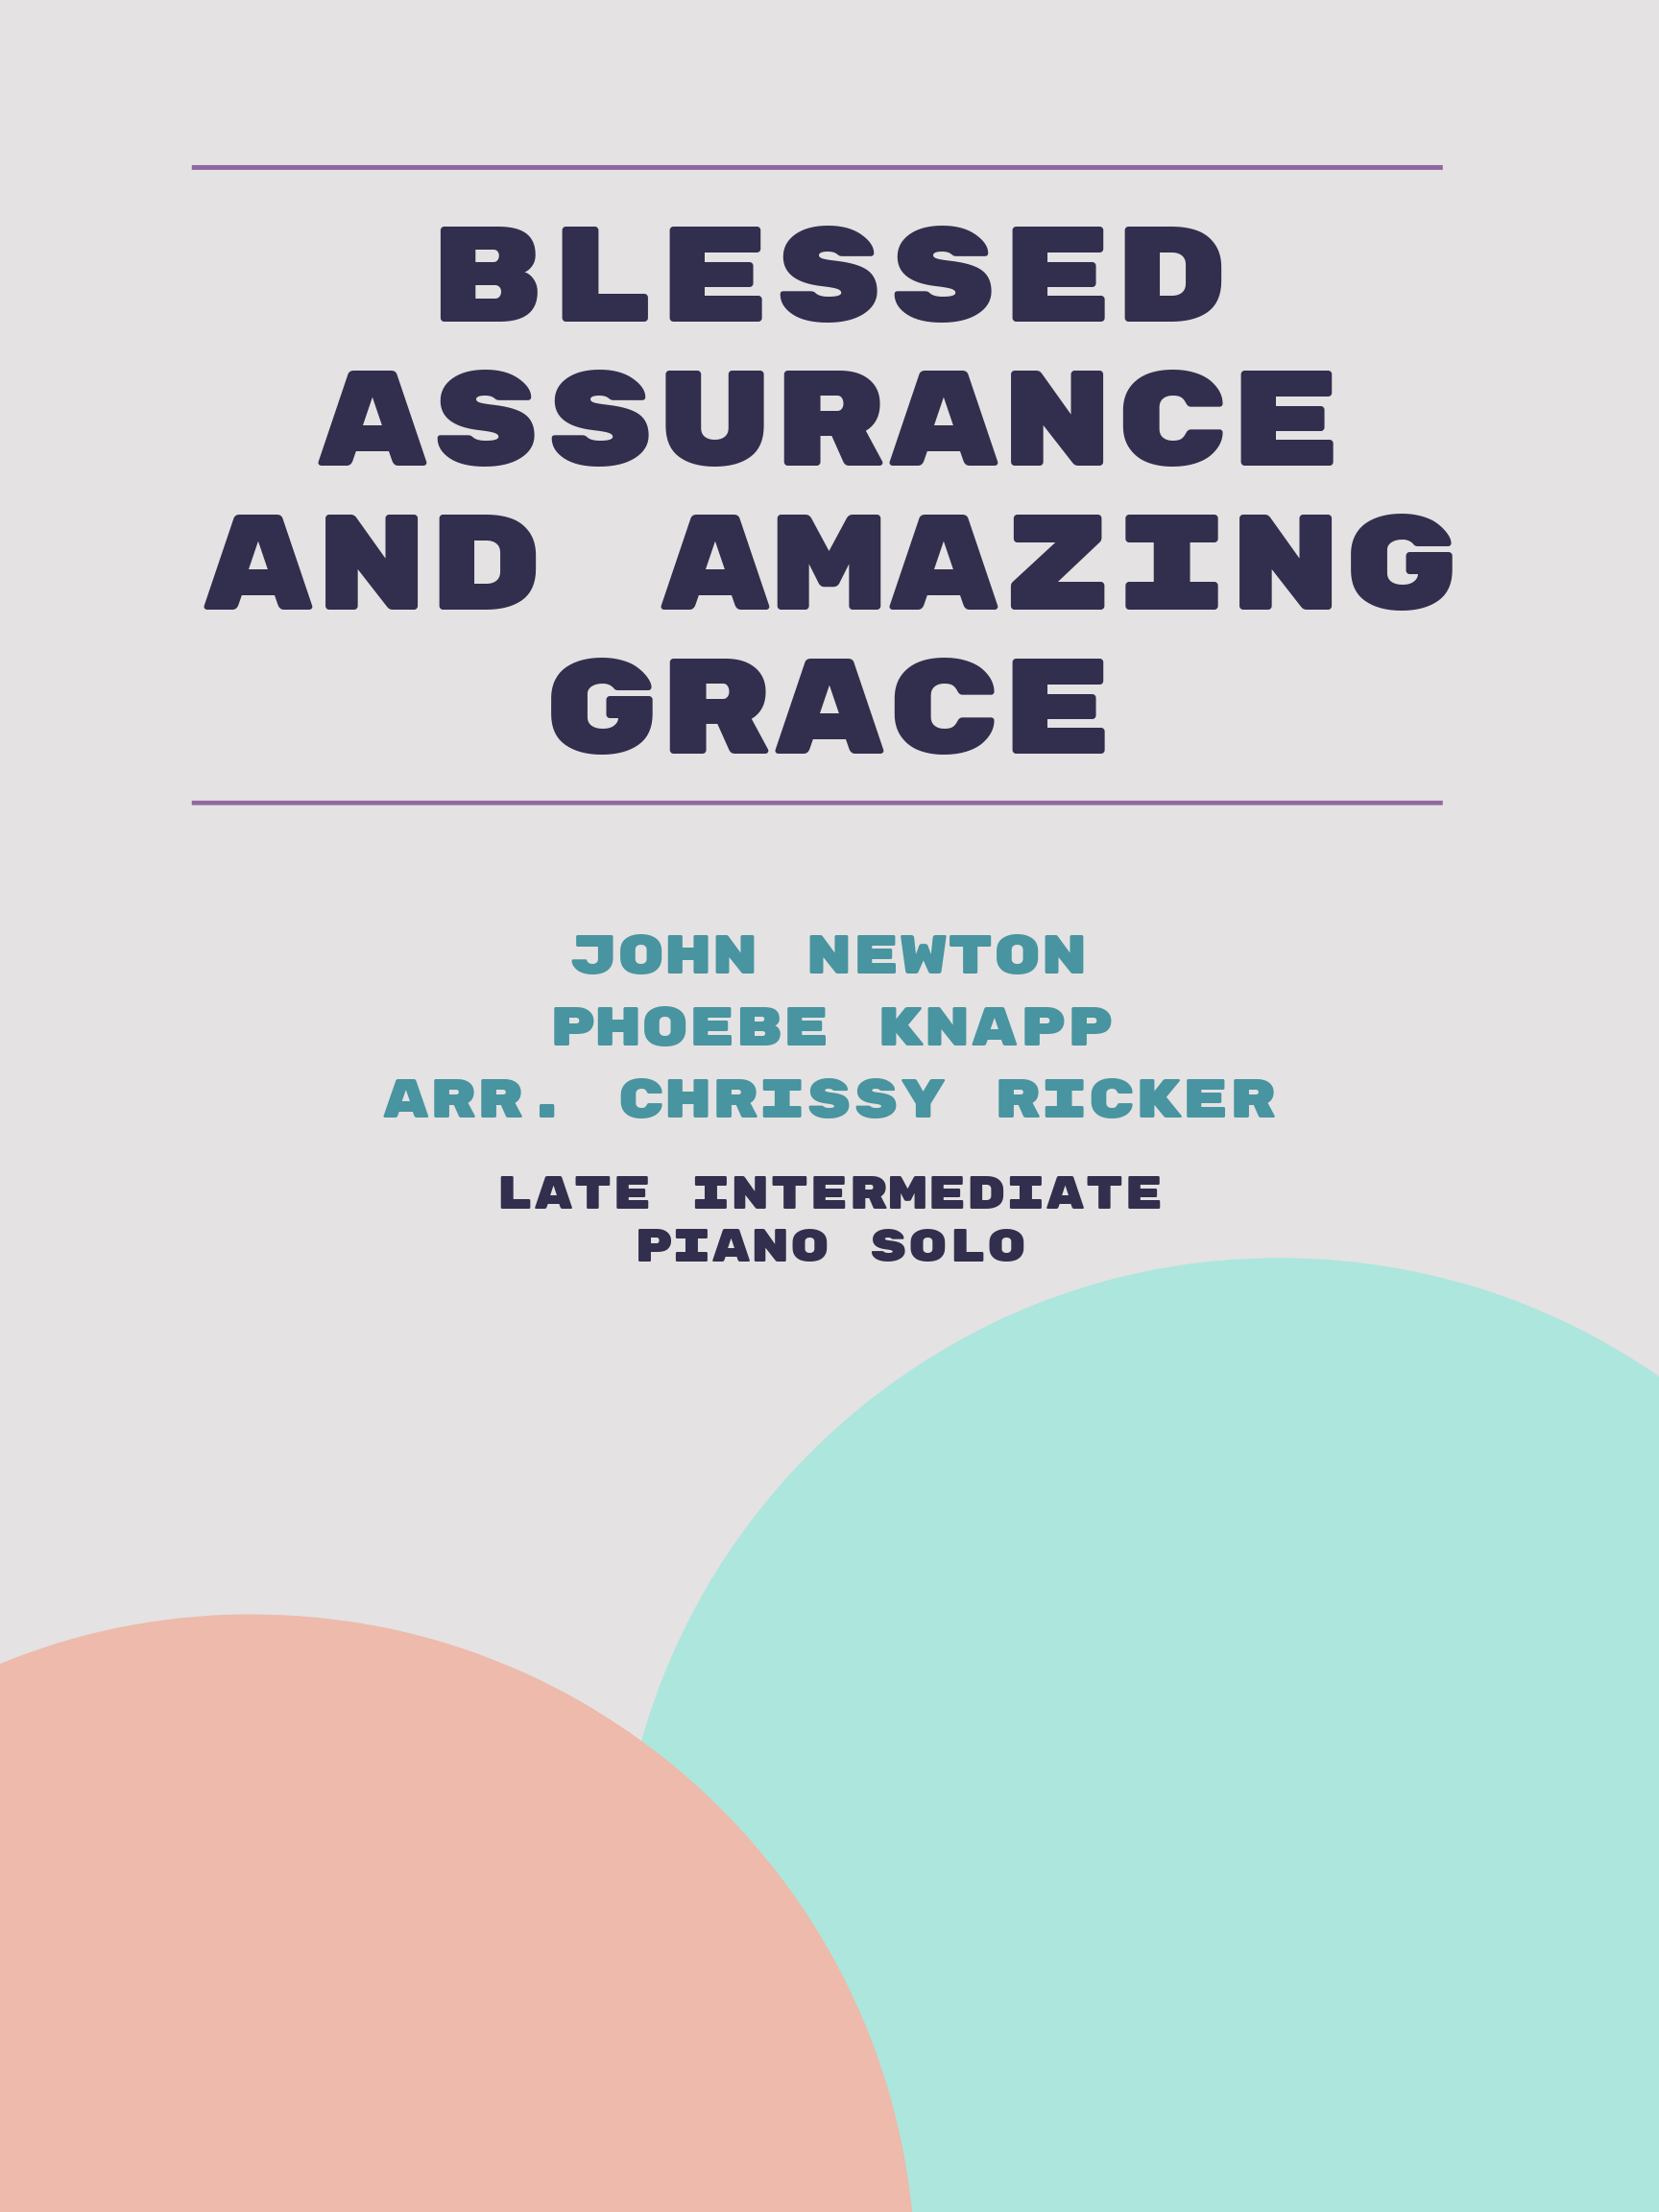 Blessed Assurance and Amazing Grace by John Newton, Phoebe Knapp